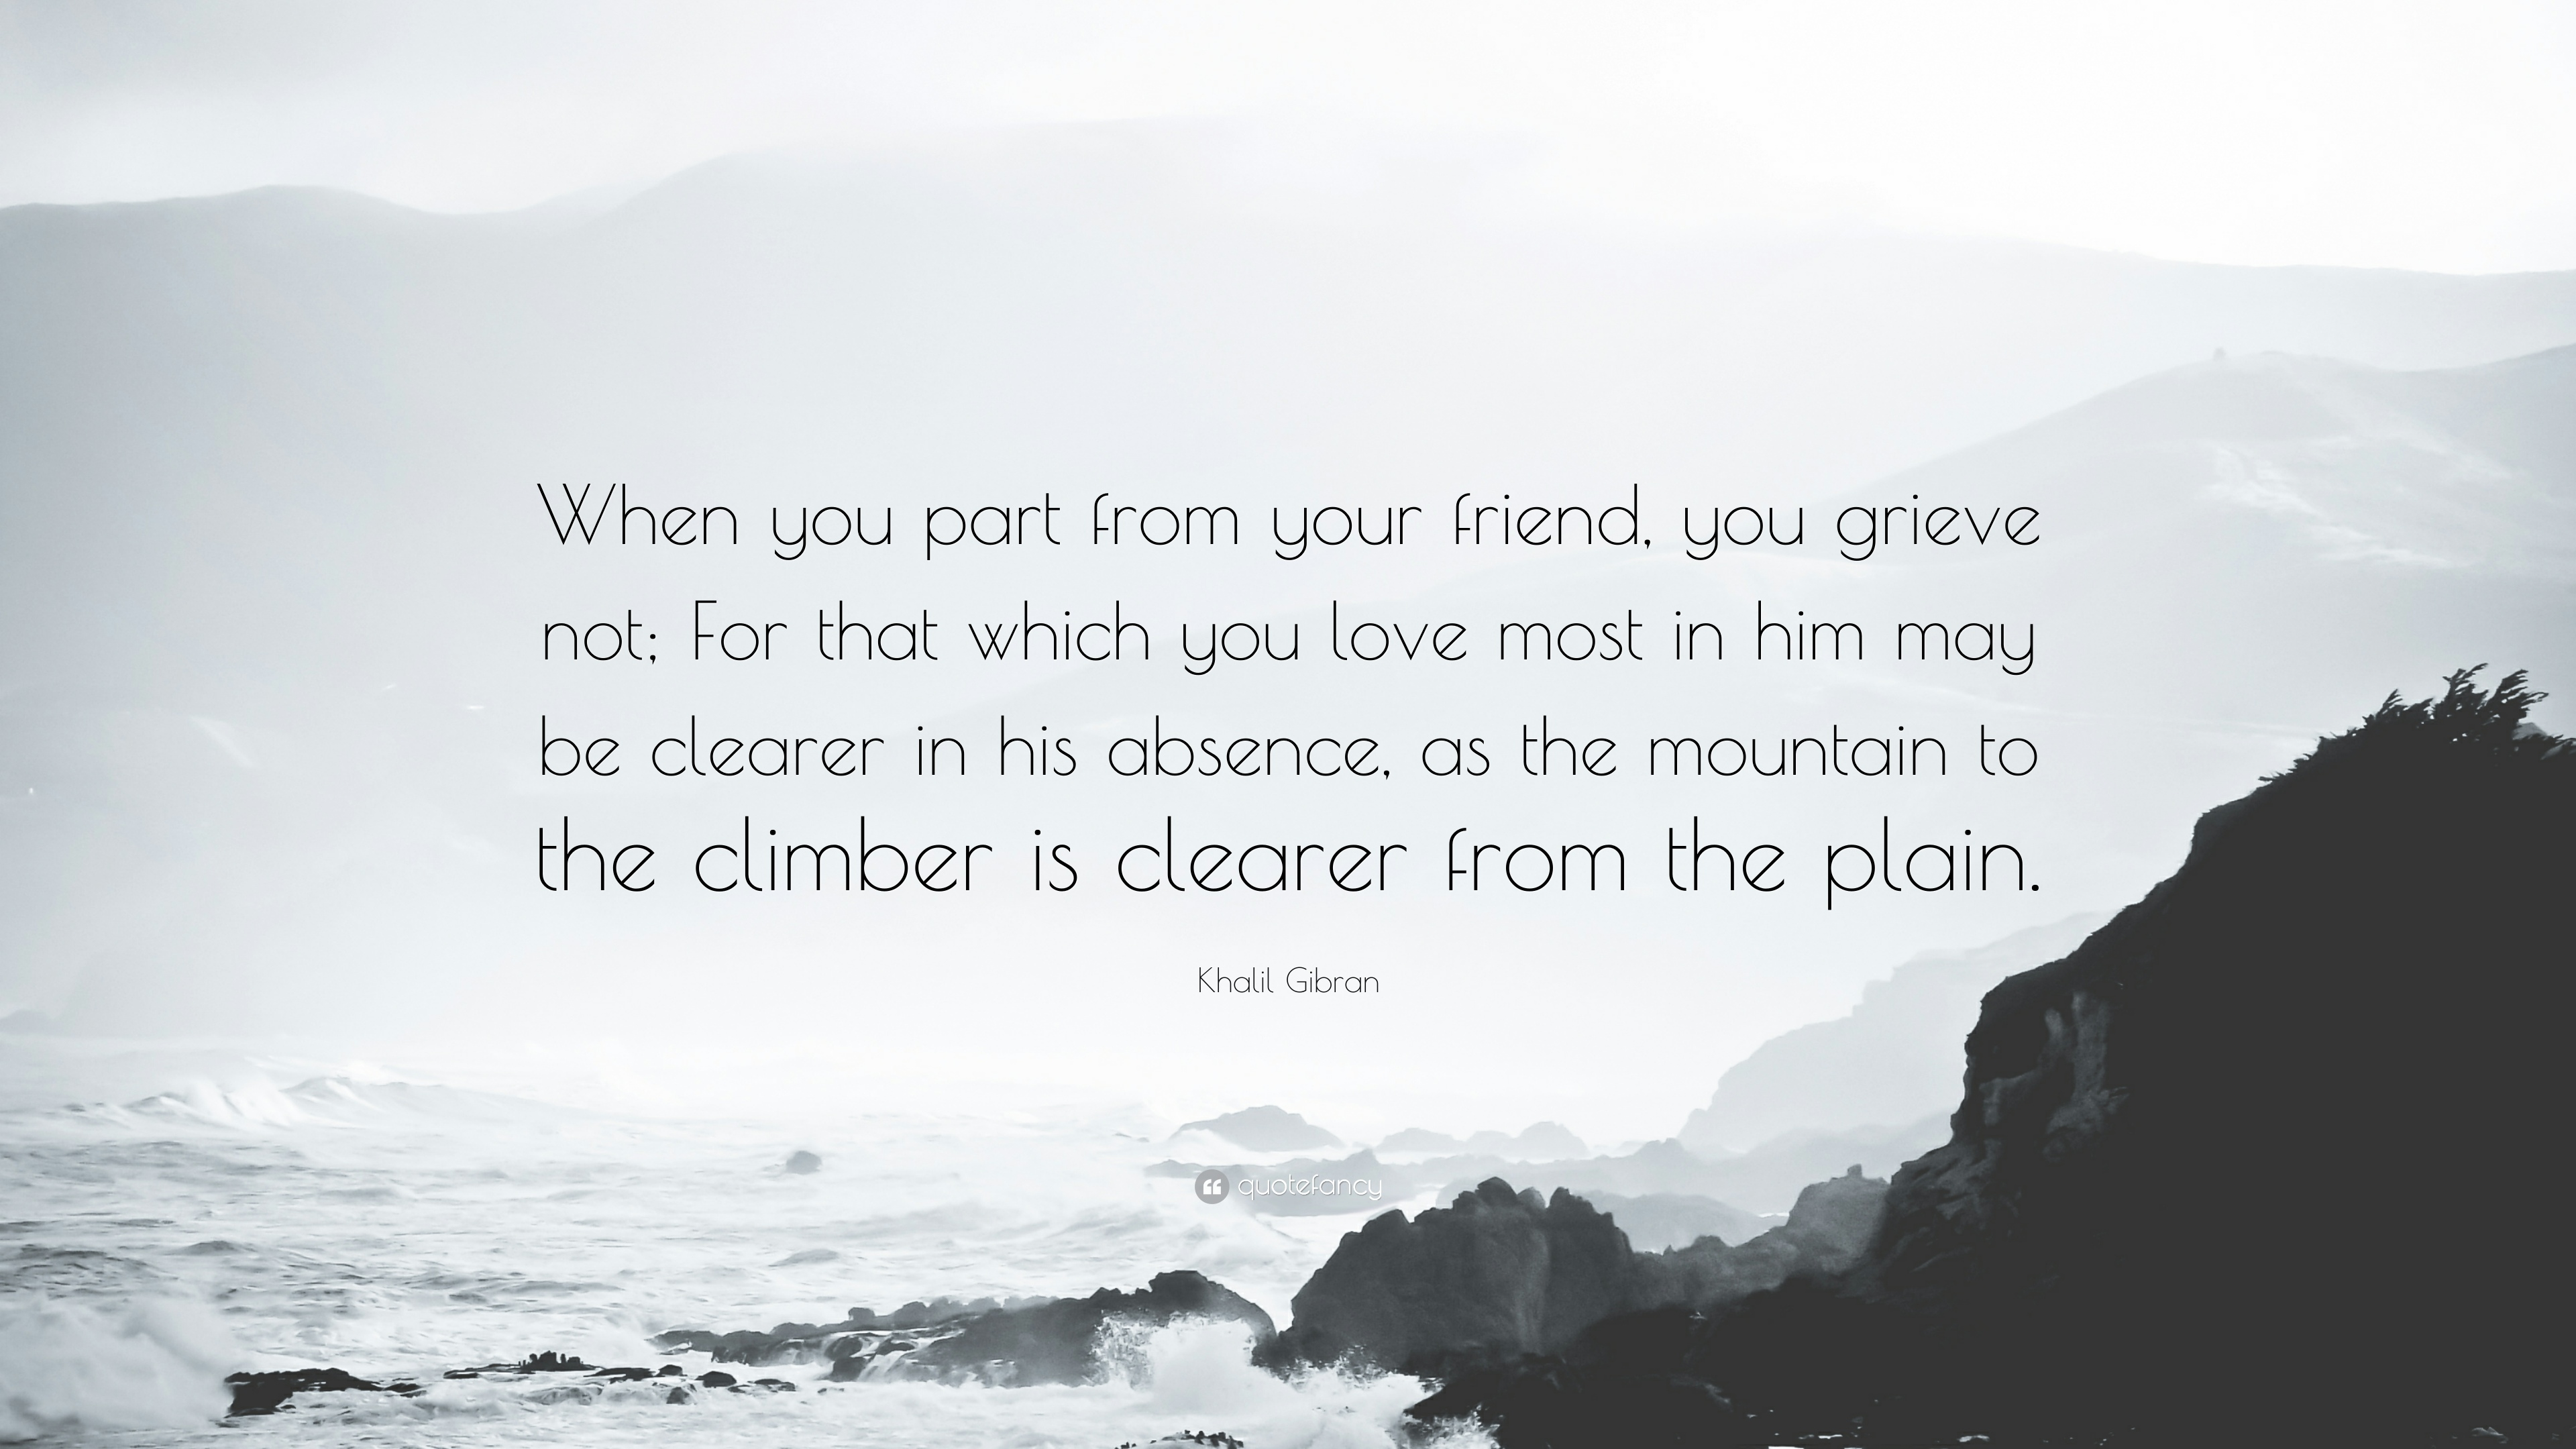 Khalil gibran quote when you part from your friend you grieve not